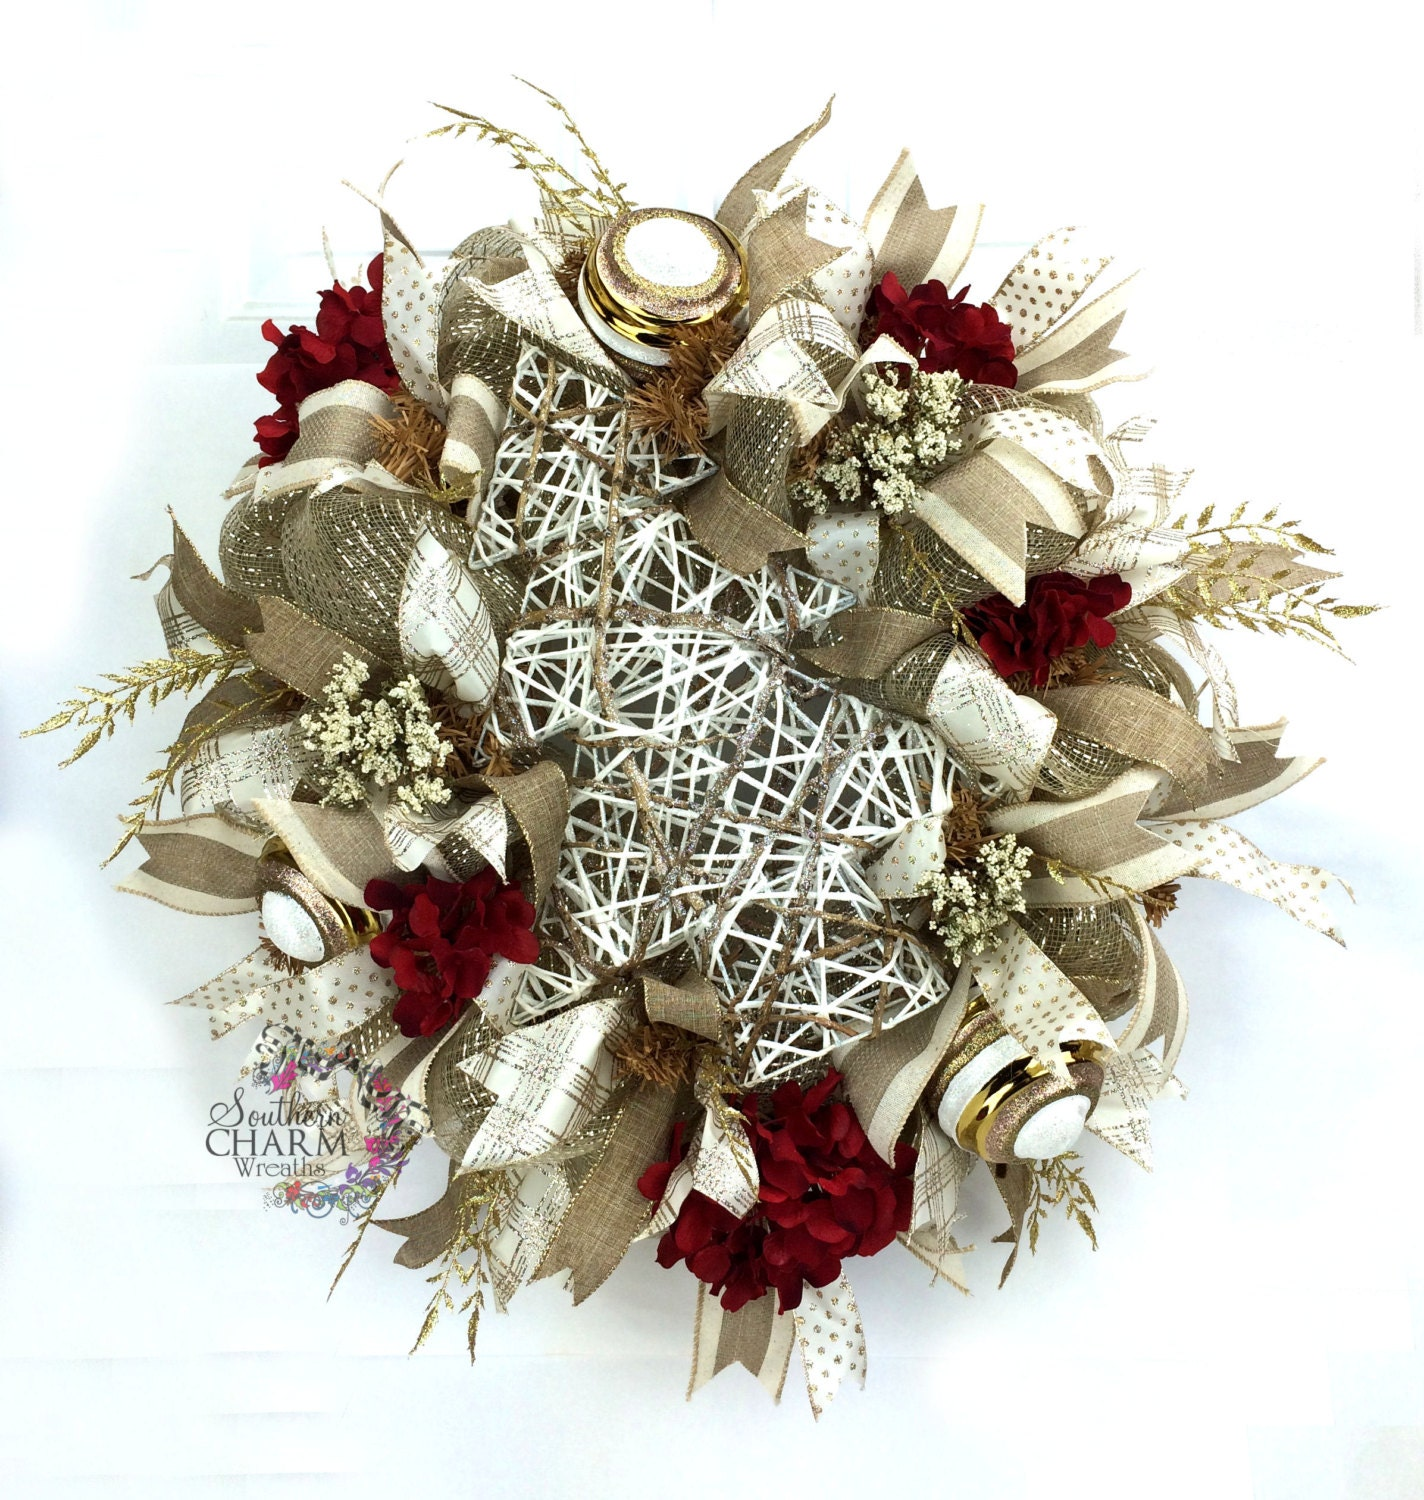 Deco Mesh Christmas Tree Wreath: Deco Mesh Christmas Wreath In Burlap Cream & Gold With Red